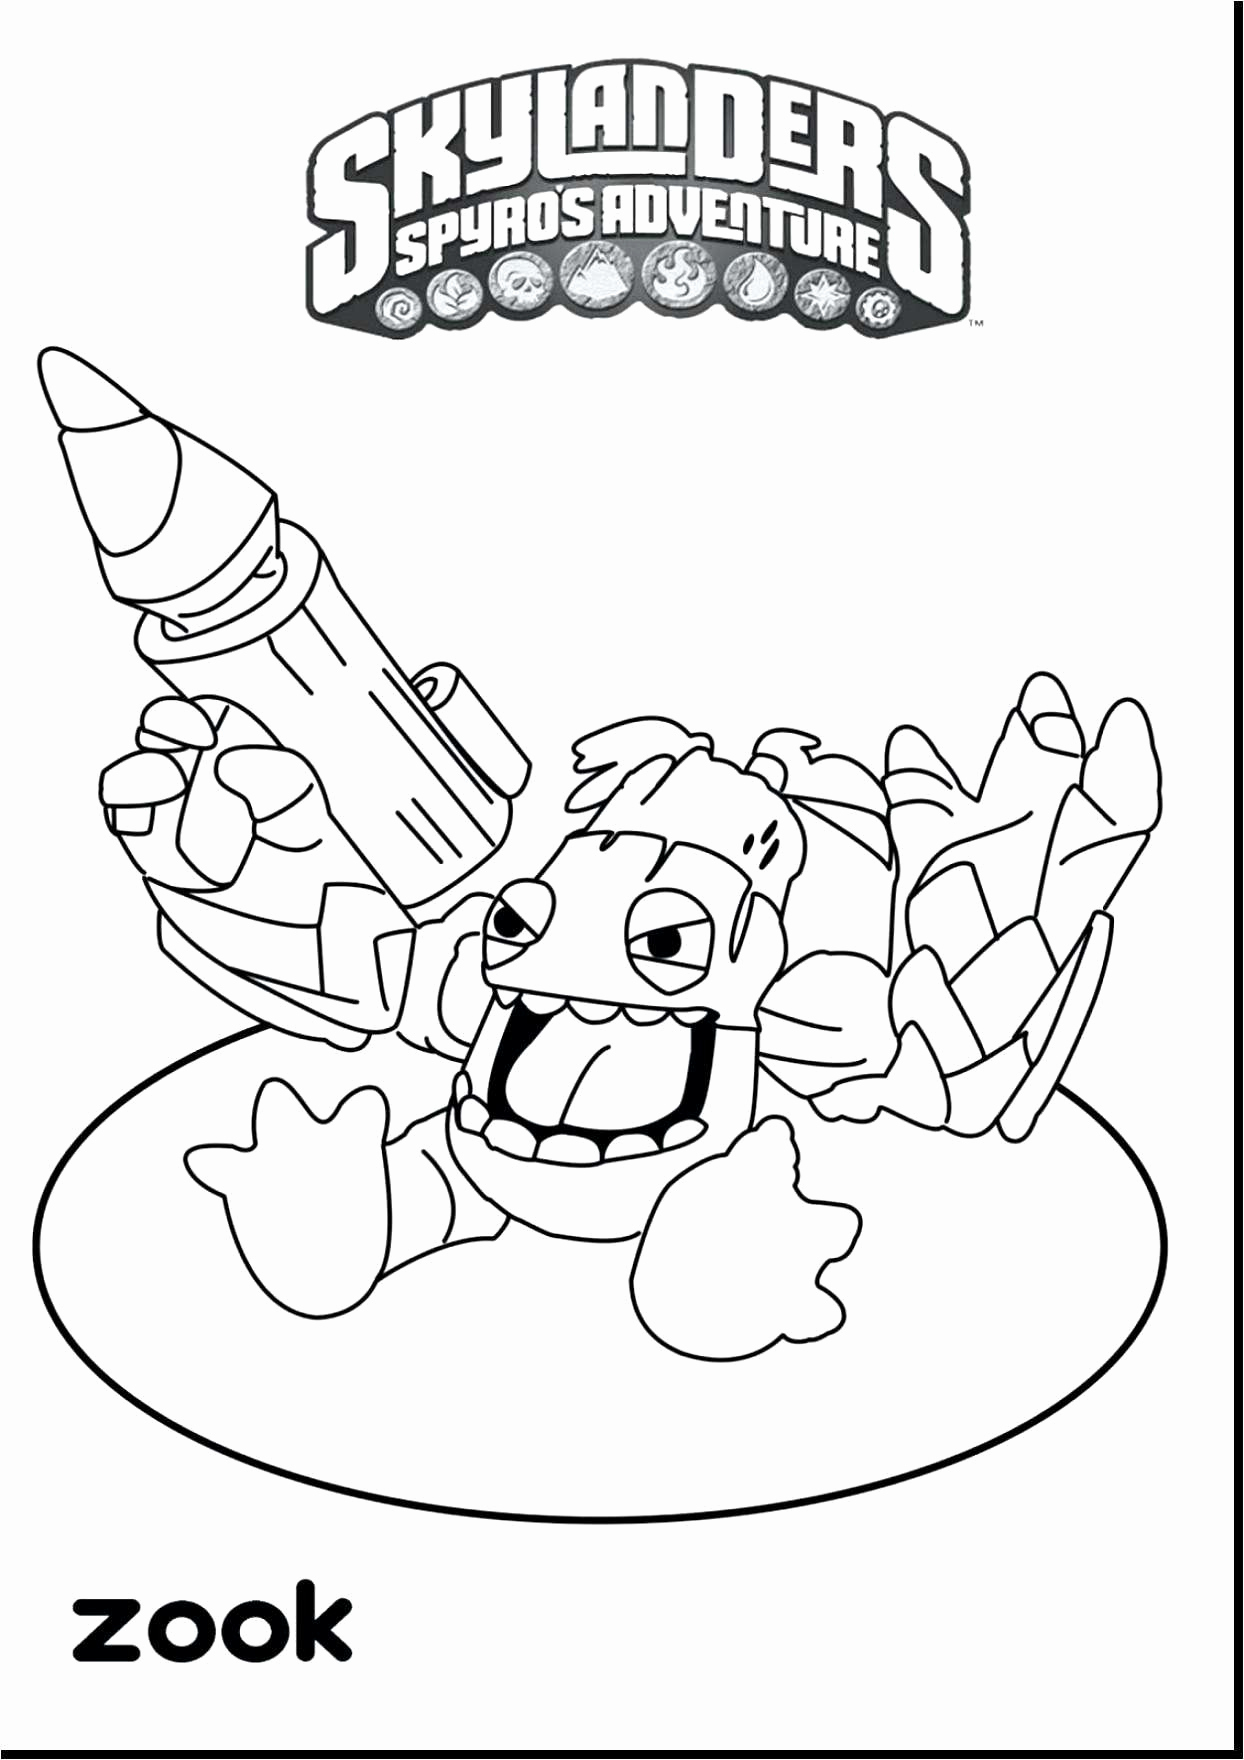 Coloring Pages Of Women  to Print 8r - Free For kids